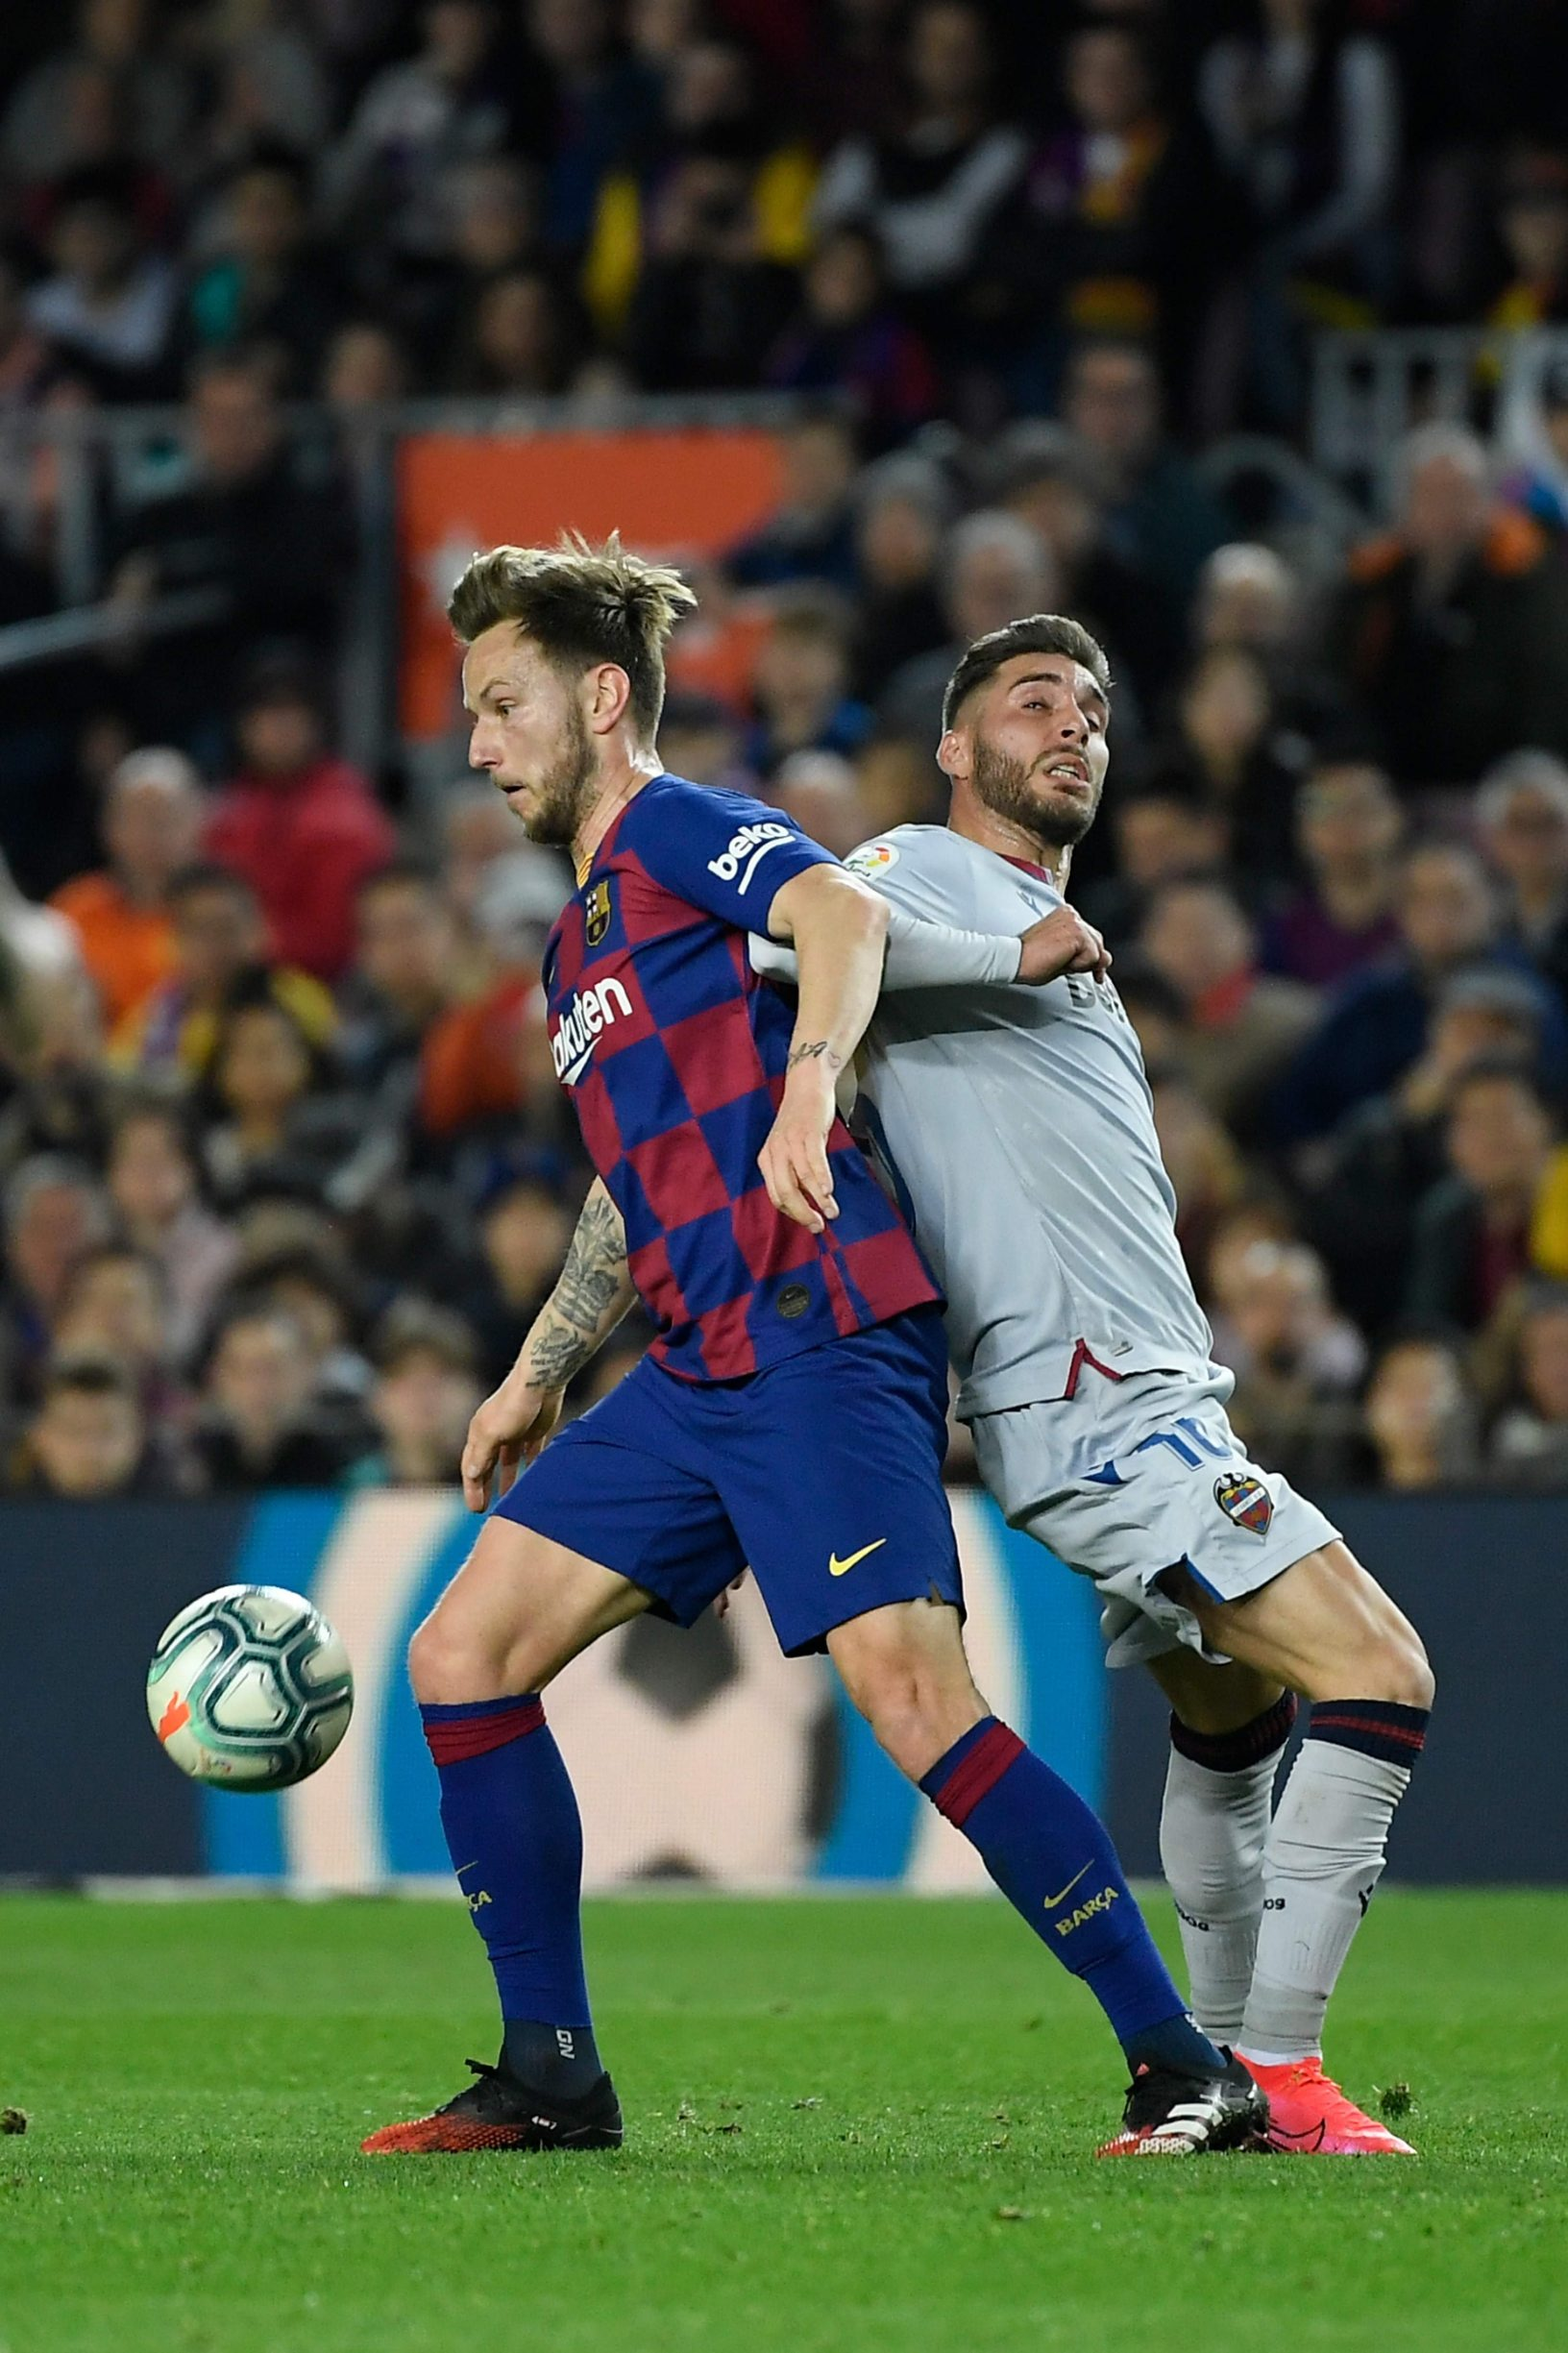 Barcelona's Croatian midfielder Ivan Rakitic (L) challenges Levante's Spanish forward Ruben Rochina during the Spanish league football match be tween FC Barcelona and Levante UD at the Camp Nou stadium in Barcelona, on February 2, 2020. (Photo by LLUIS GENE / AFP)